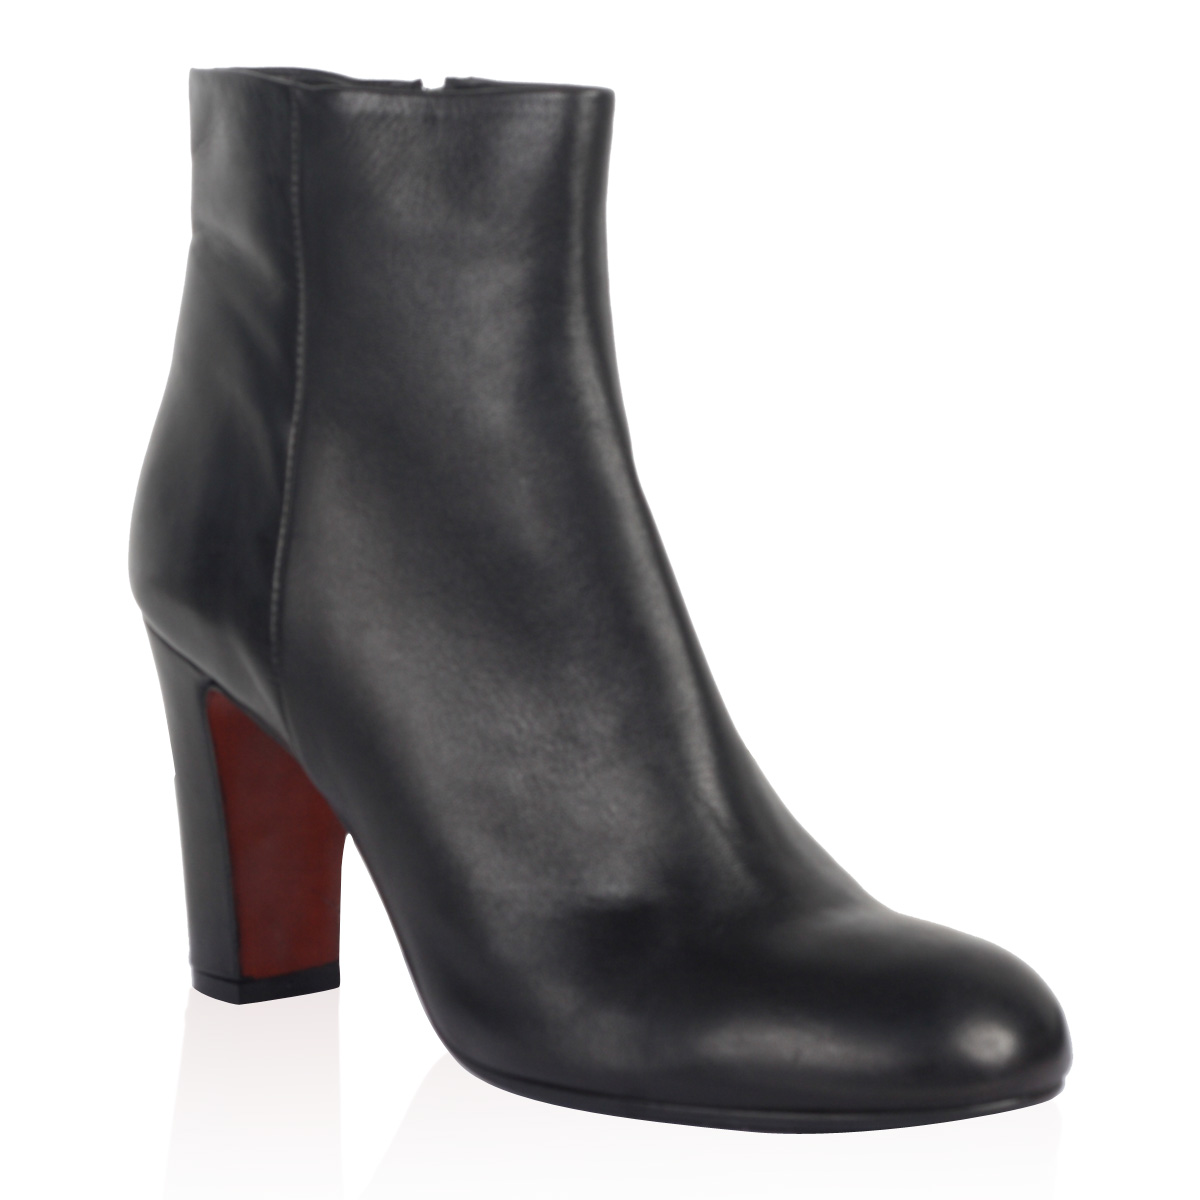 PIED-A-TERRE-LADIES-SANCHO-WOMENS-BLACK-BLOCK-HEEL-LEATHER-ANKLE-BOOTS-SIZE-3-8